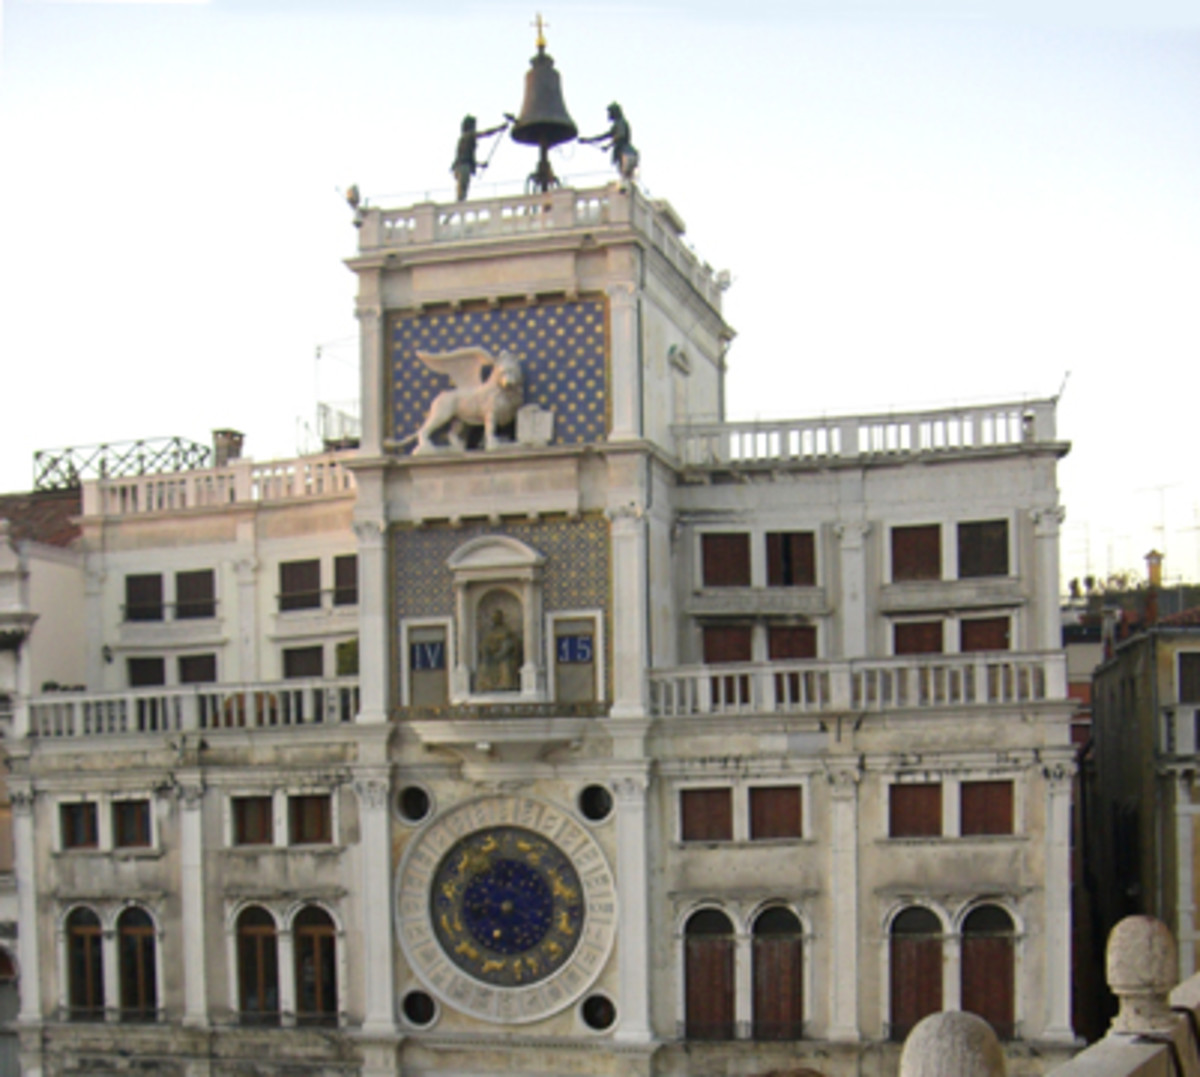 Saint Mark's Square Clocktower